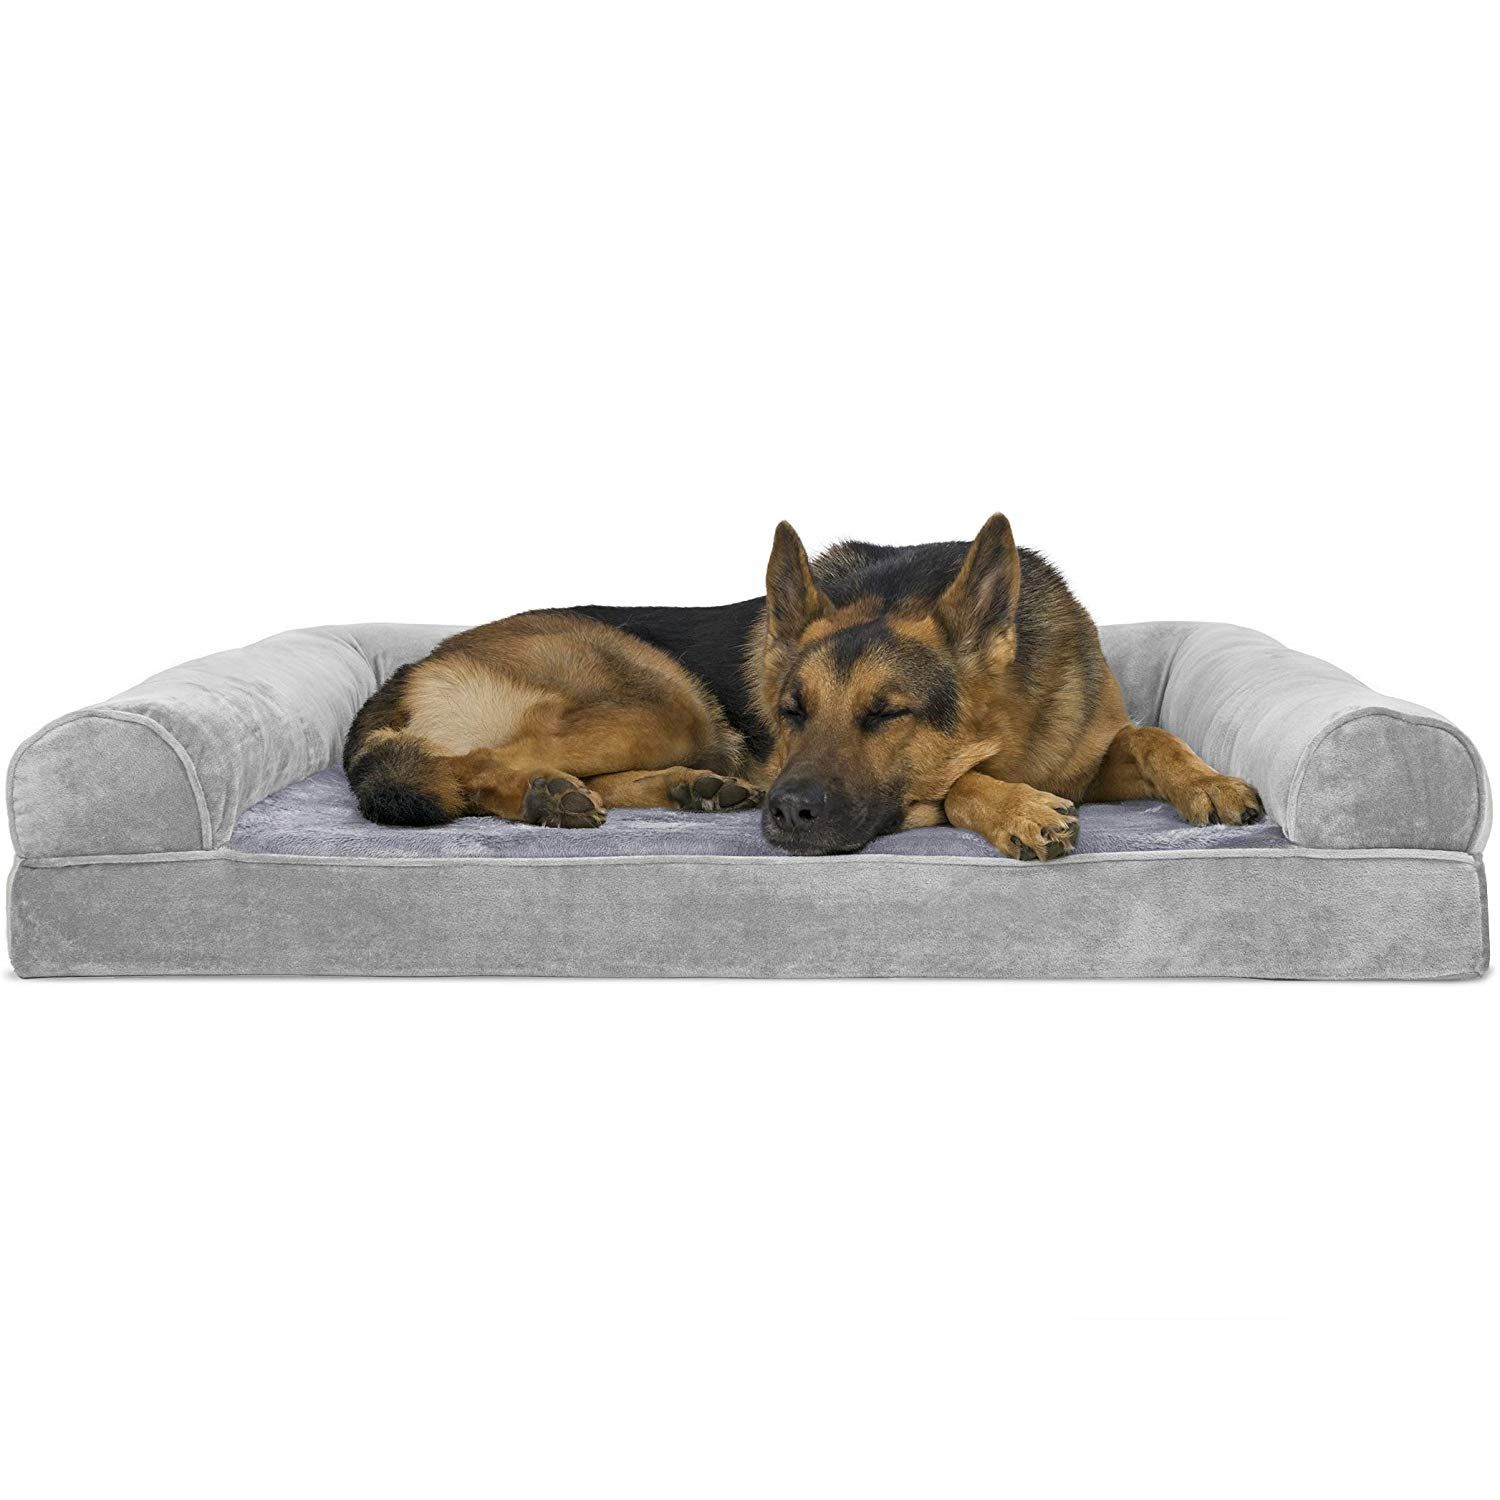 Furhaven Pet Dog Bed Orthopedic Faux Fur Velvet Traditional Sofa Style Living Room Couch Pet Be Orthopedic Dog Bed Dog Pet Beds Dog Sofa Bed